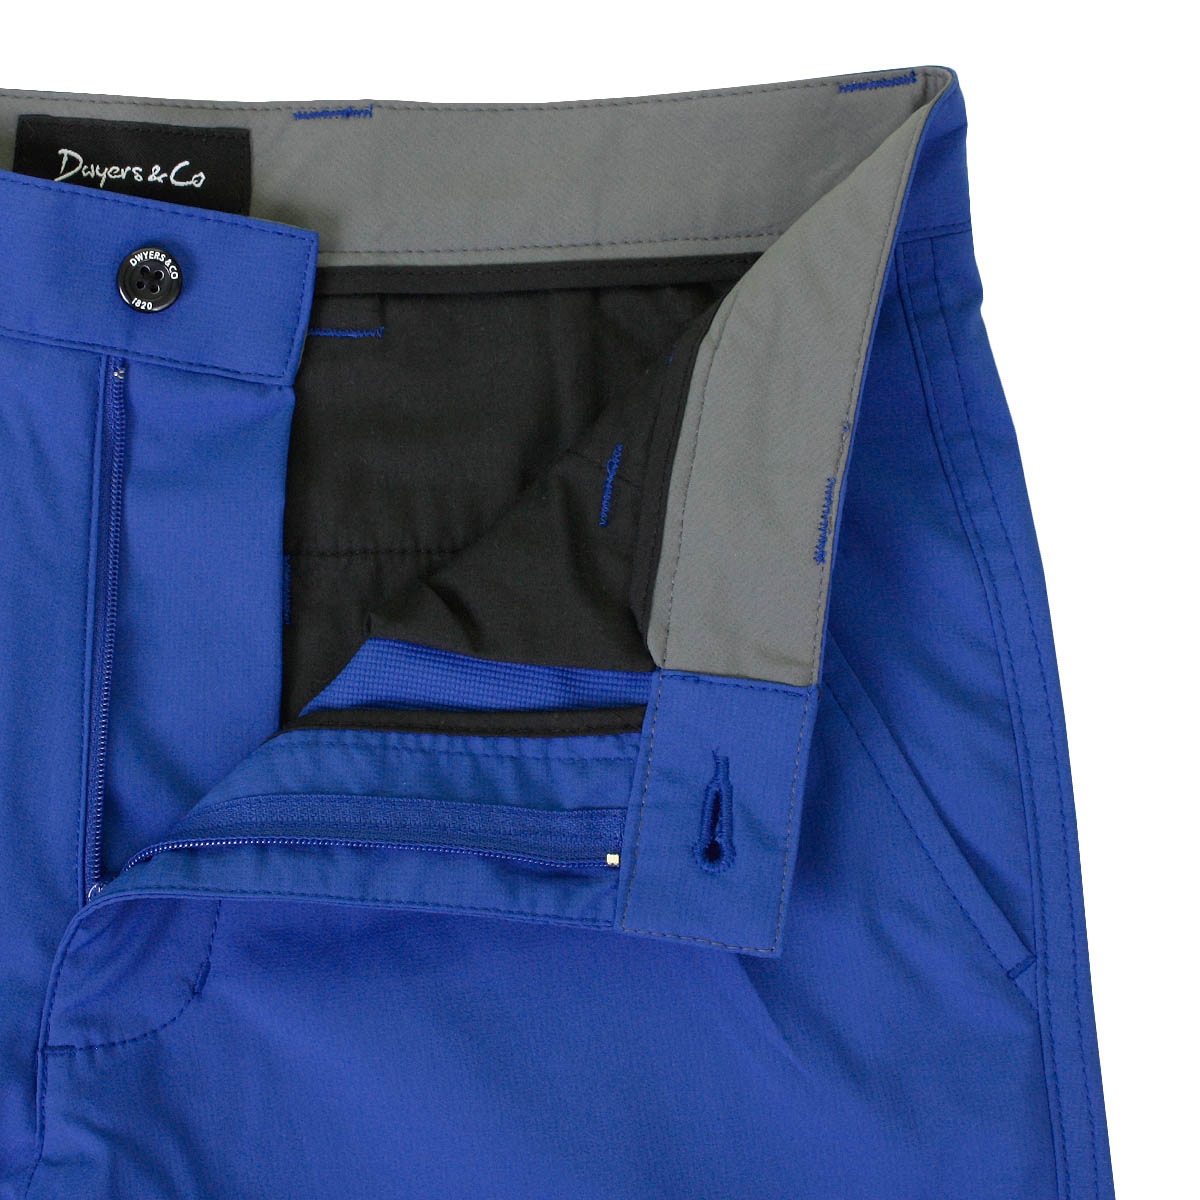 Dwyers-amp-Co-Mens-Matchplay-Stretch-Lightweight-Golf-Trousers-38-OFF-RRP thumbnail 29